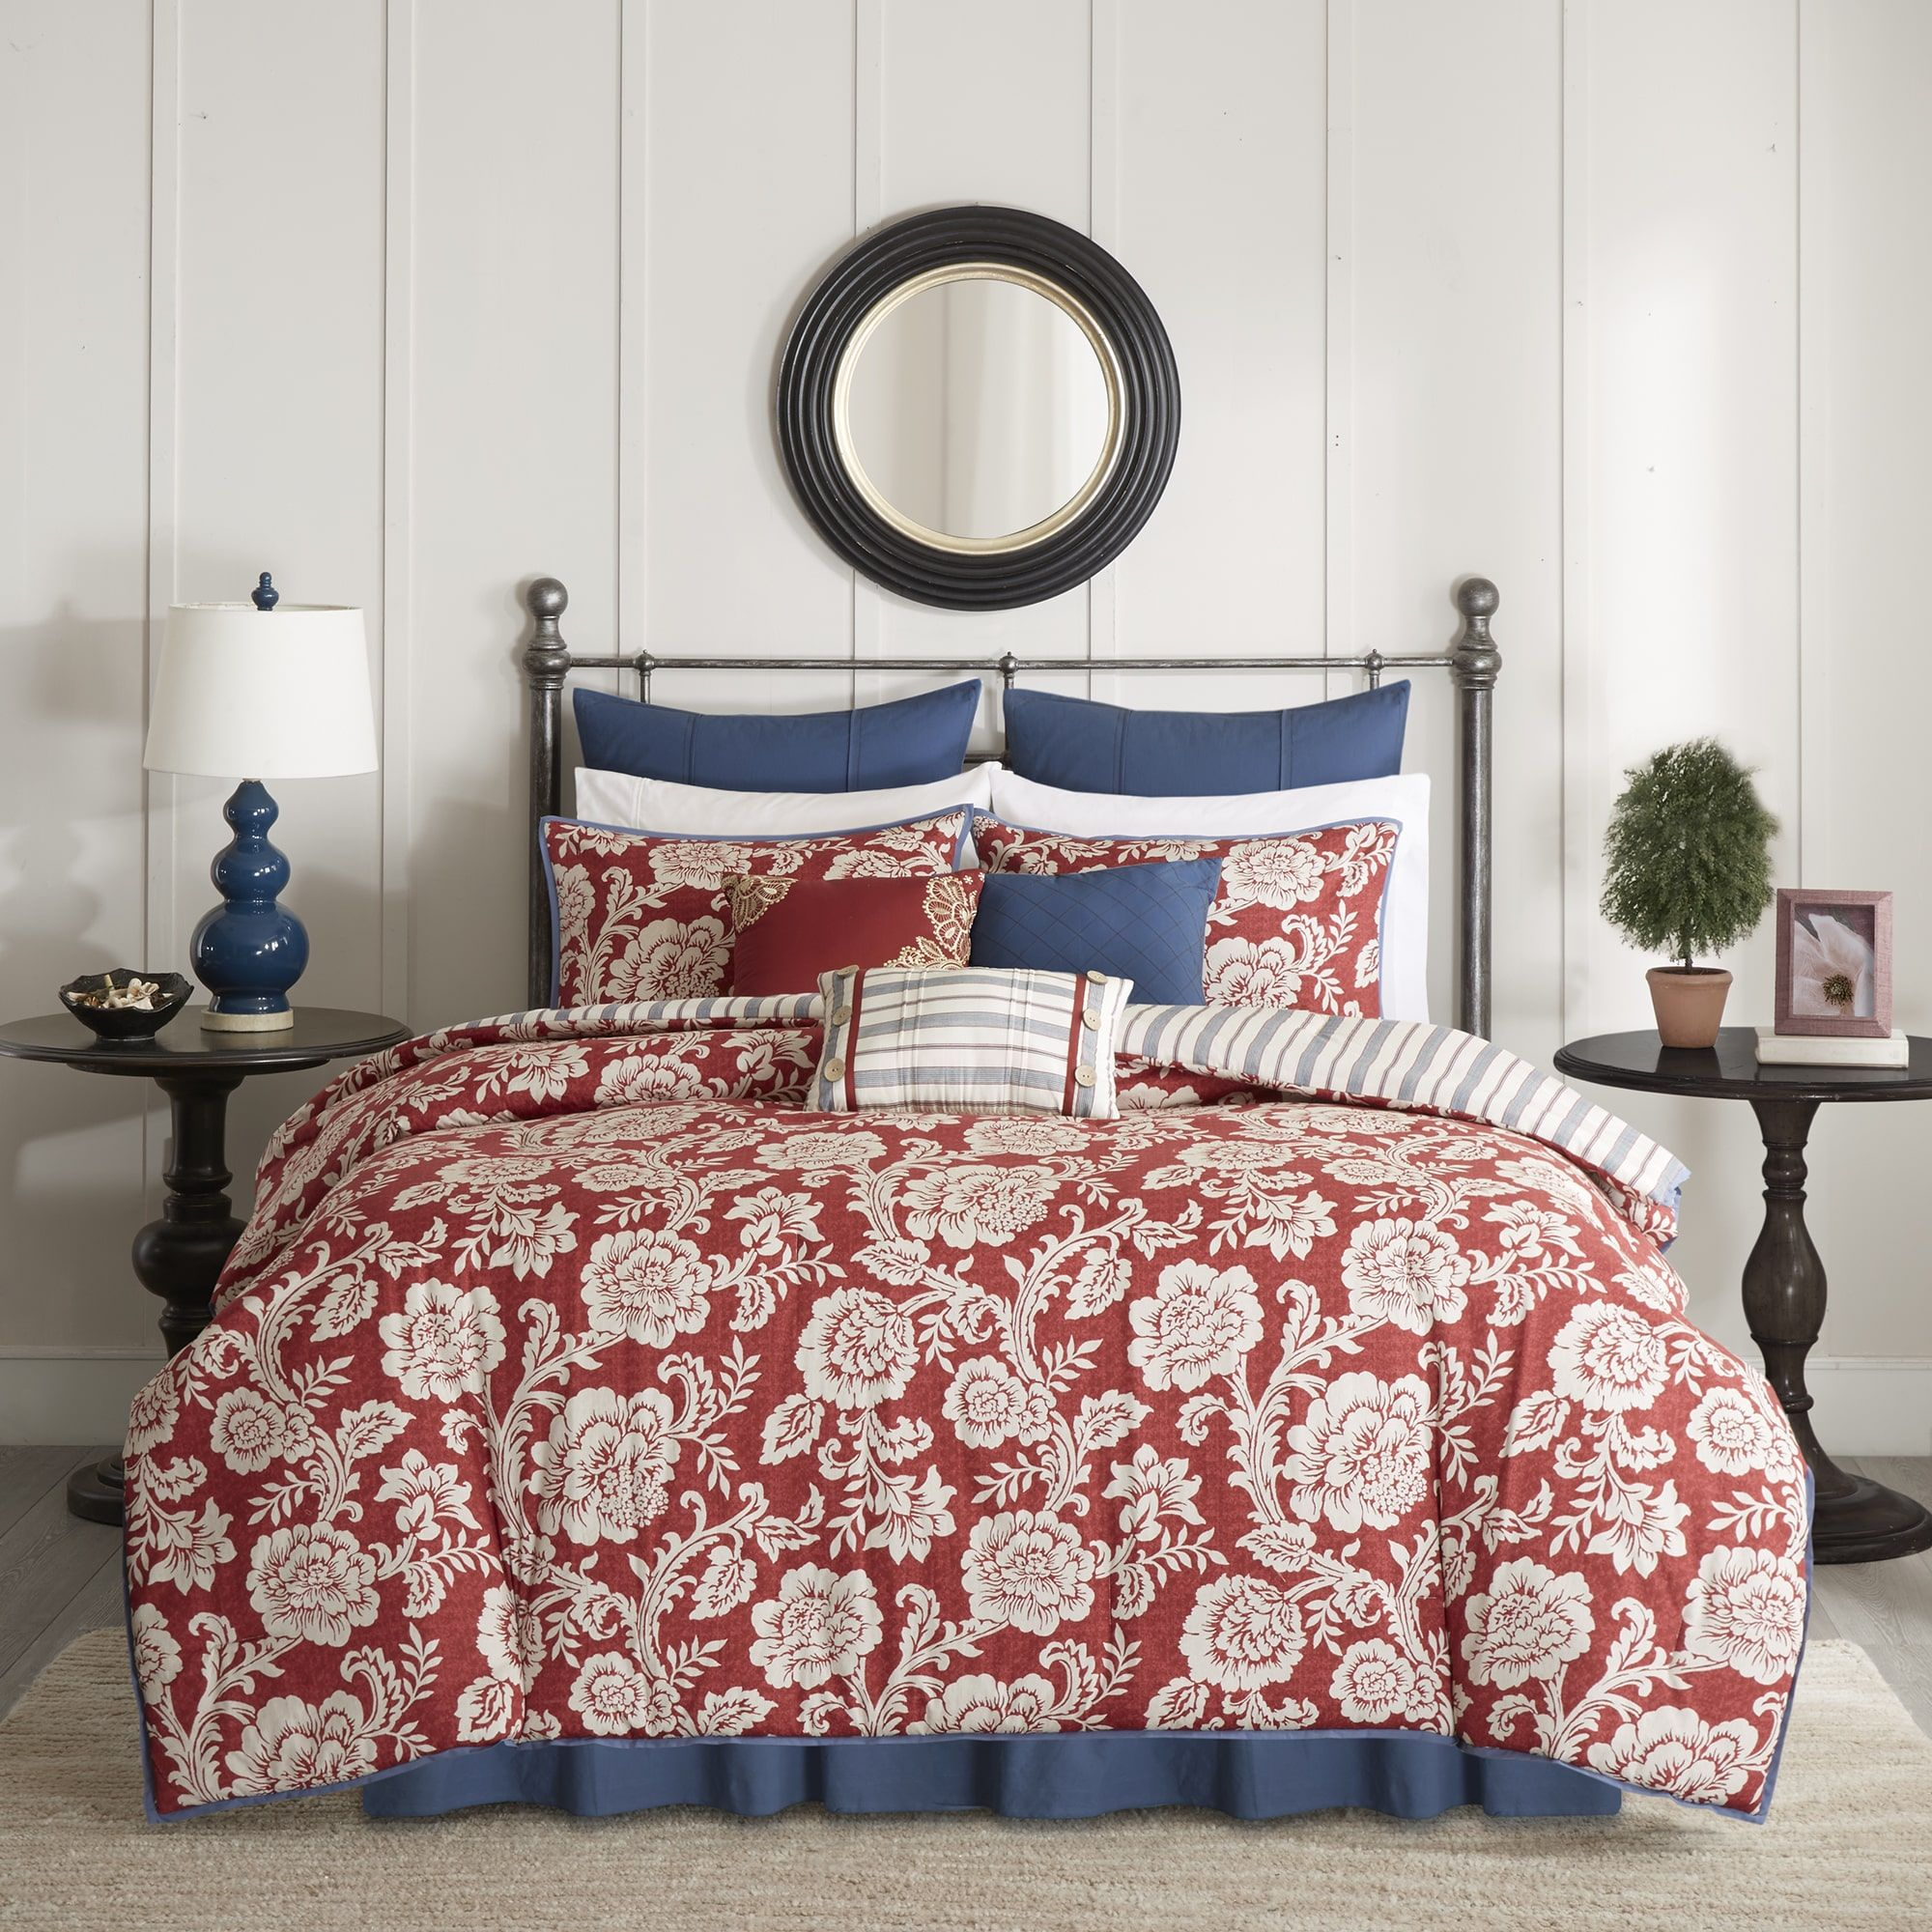 Size King Blue, Red Comforter Sets : Free Shipping on orders over ...